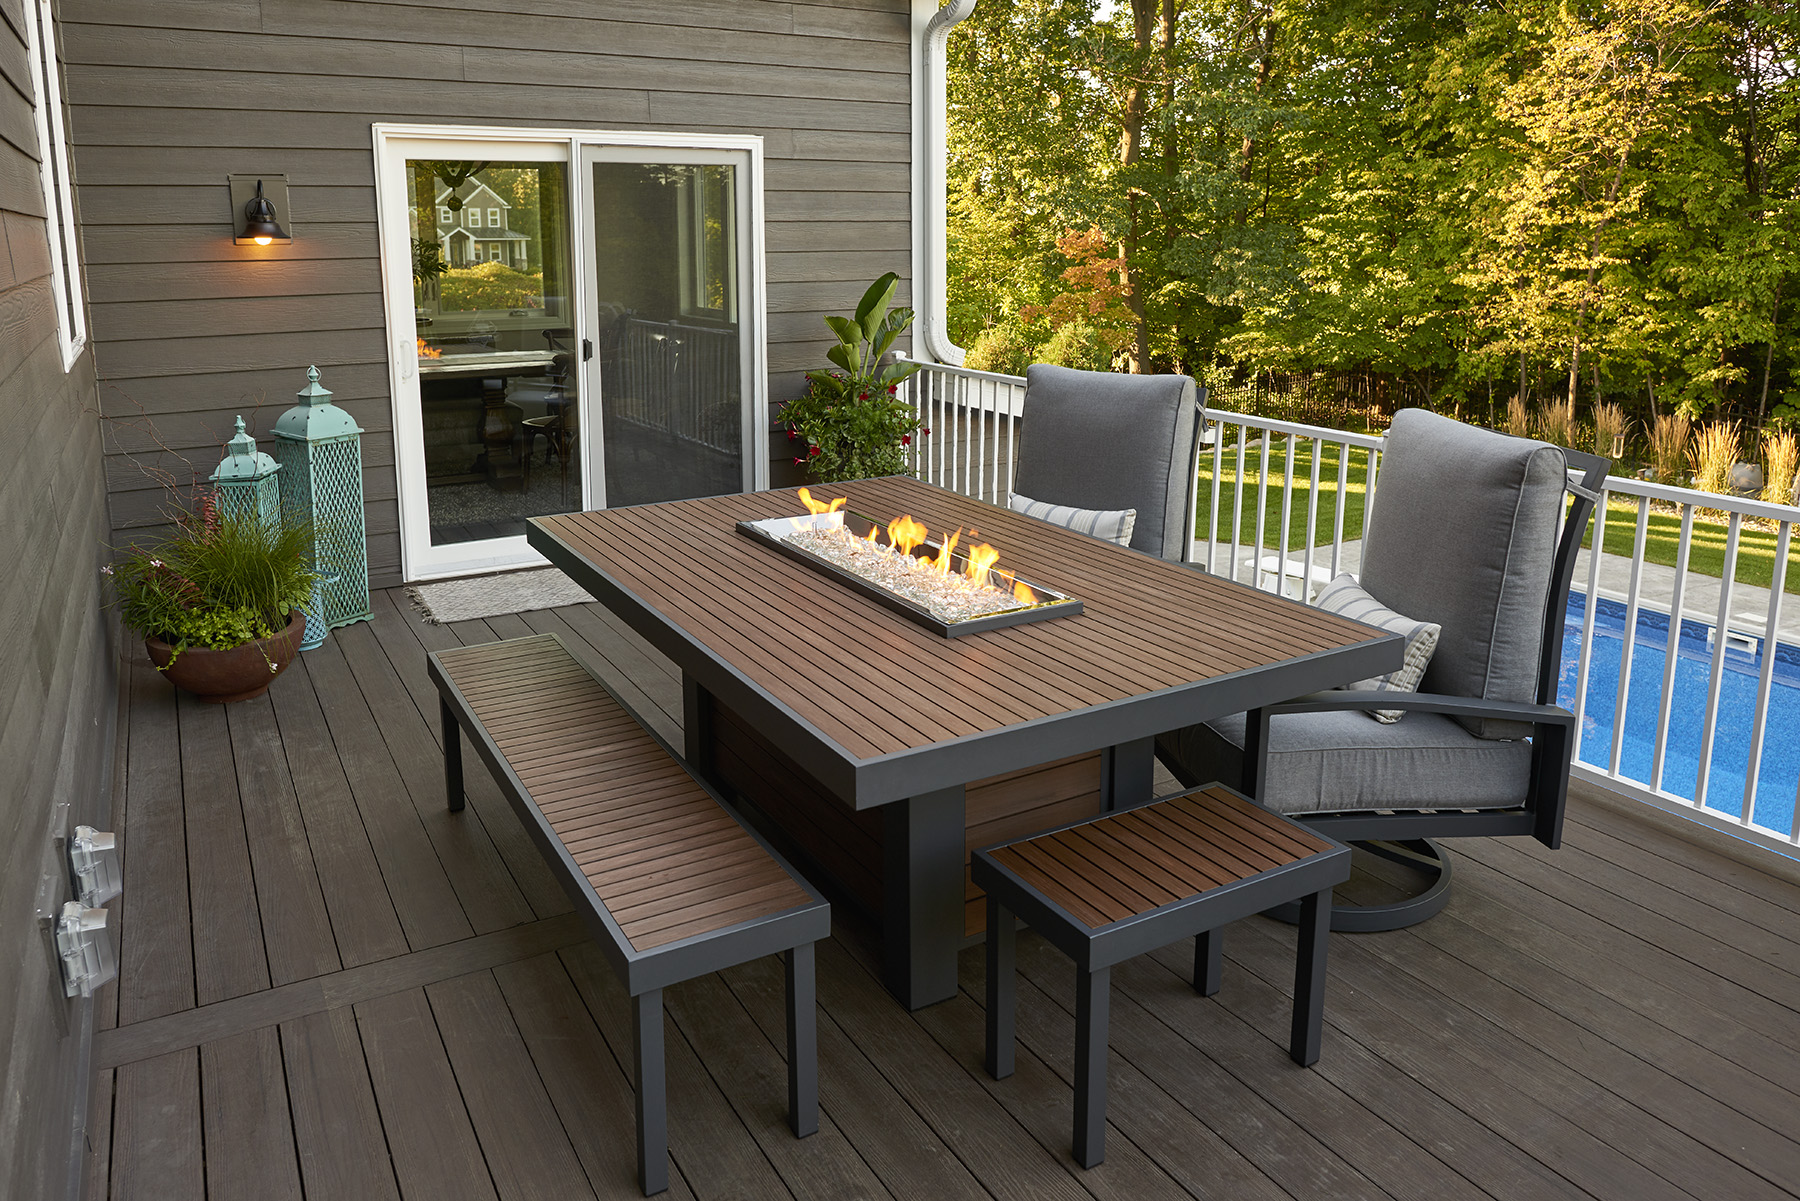 Outdoor GreatRoom Company Unveils New 2018 Products on Outdoor Living Company id=13992